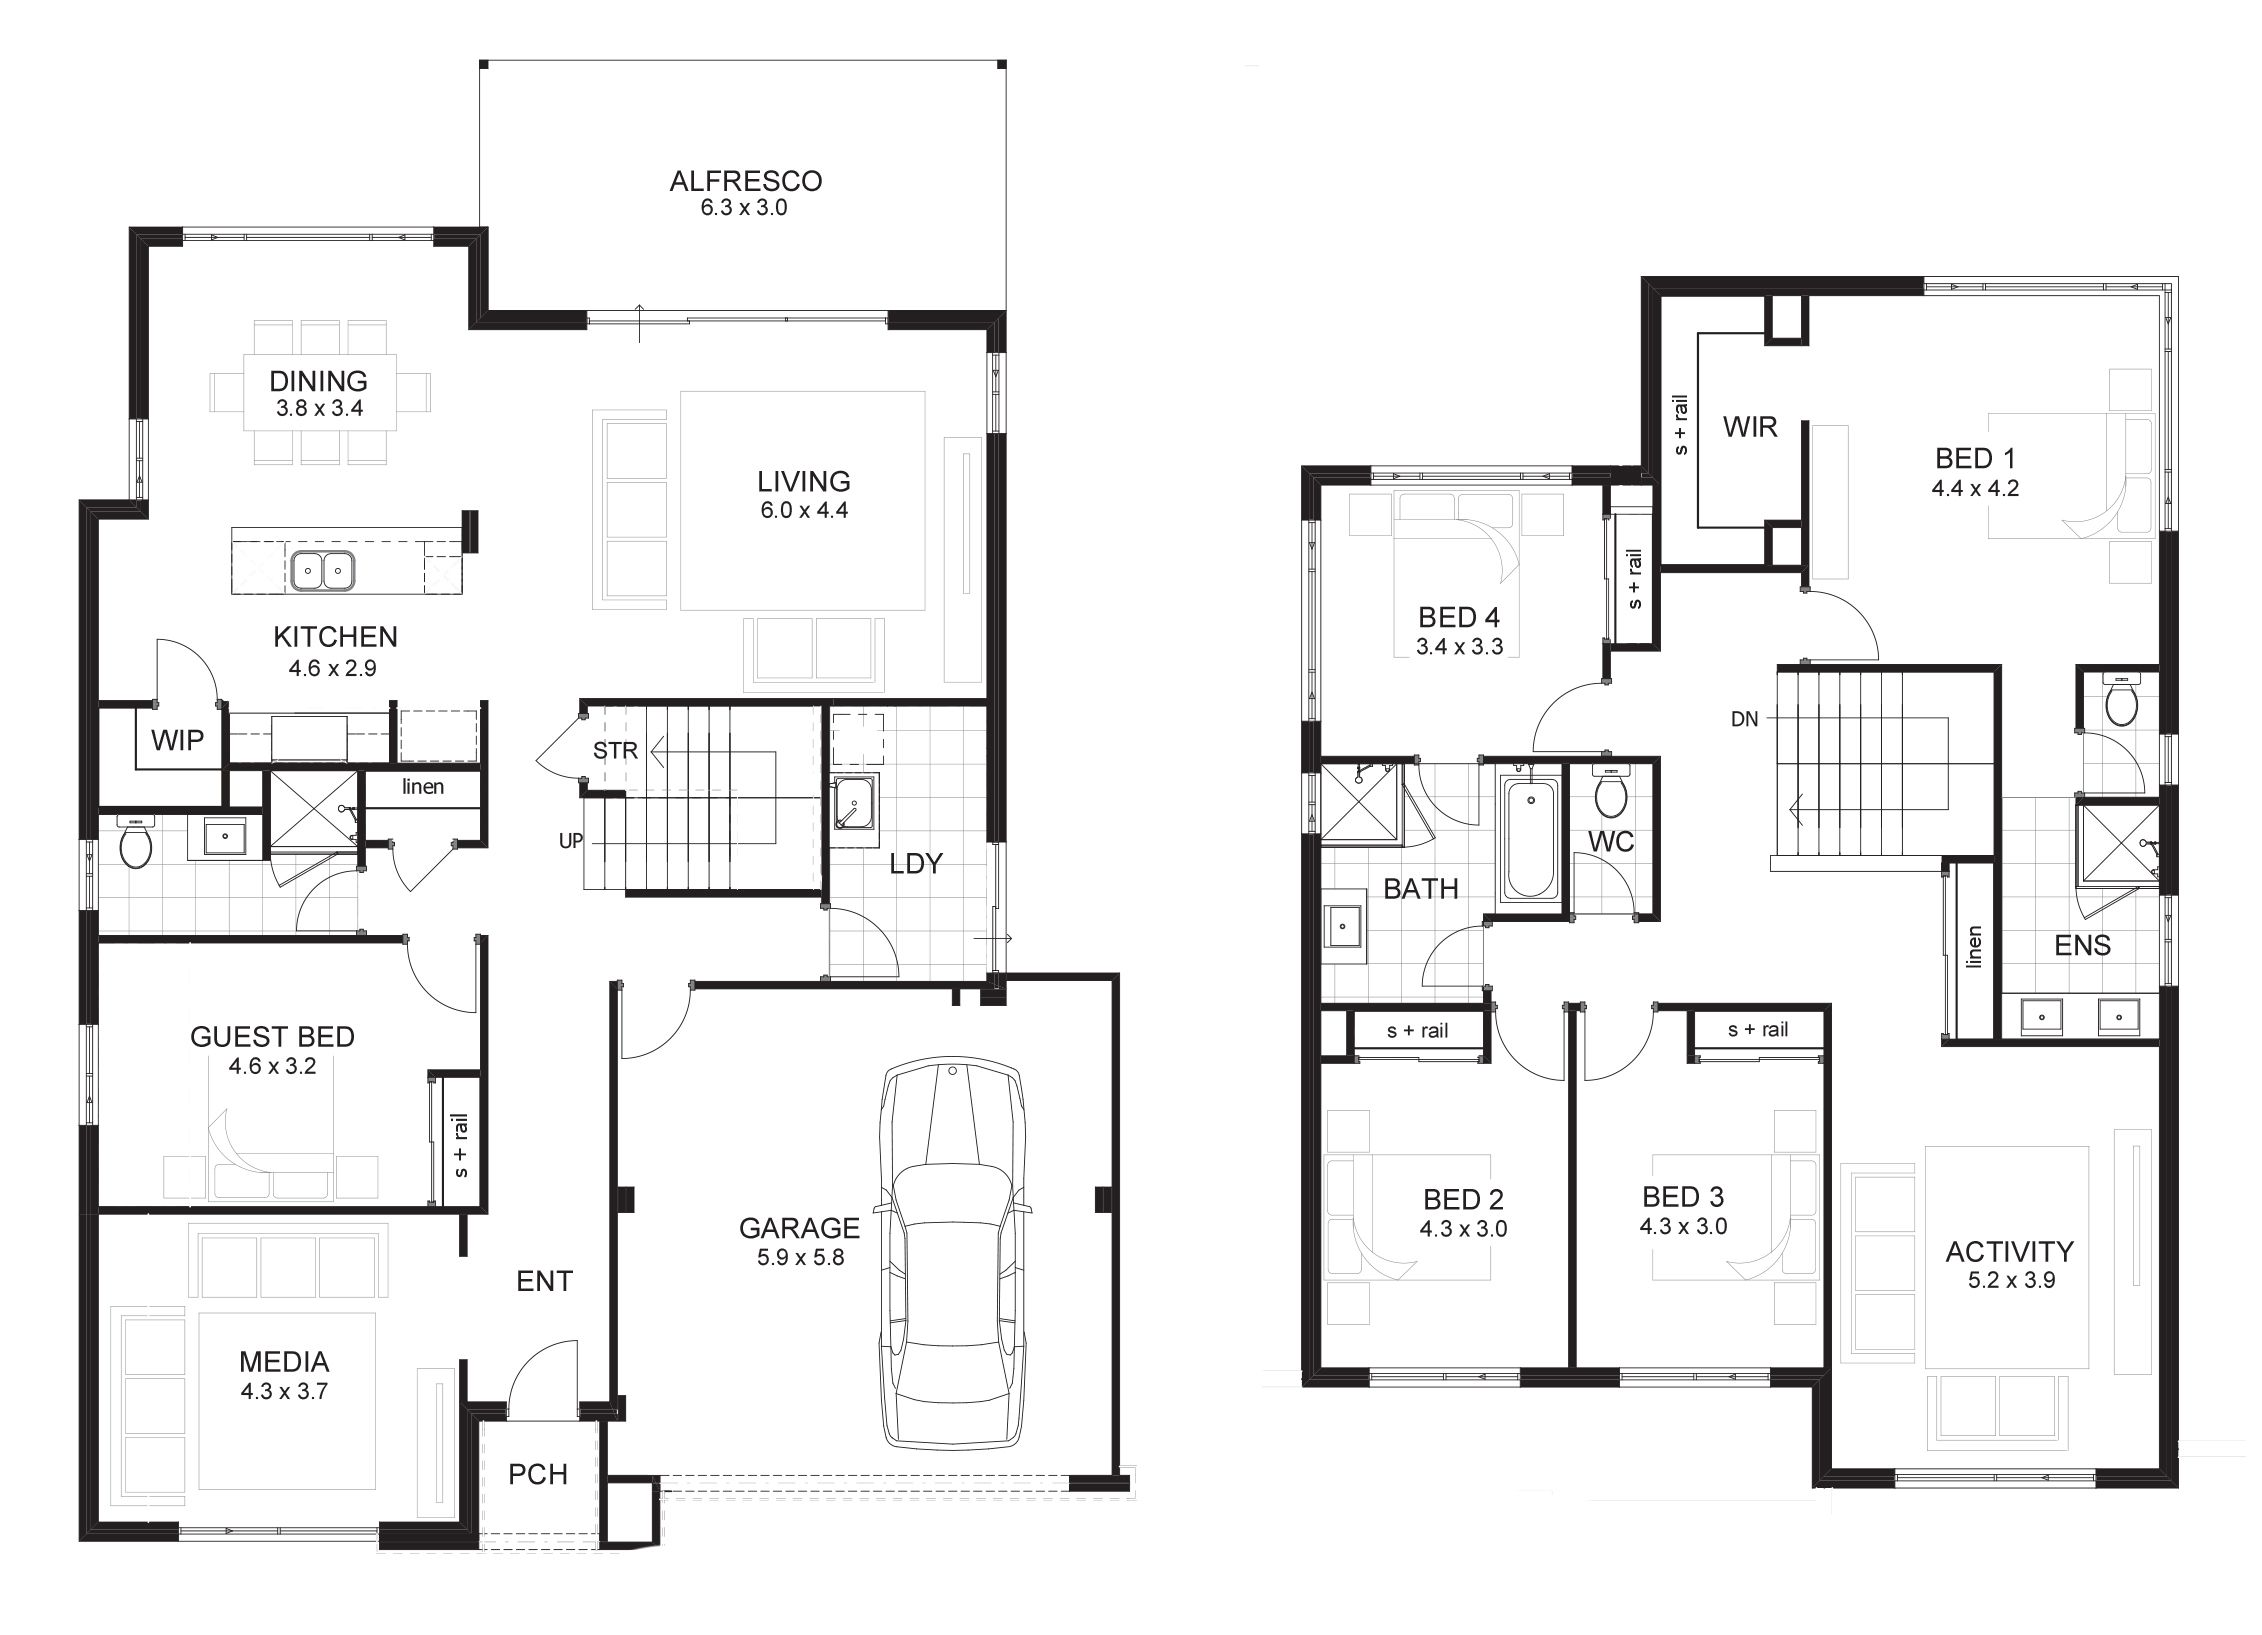 6 bedroom house plans perth pinterest for 6 bedroom house designs